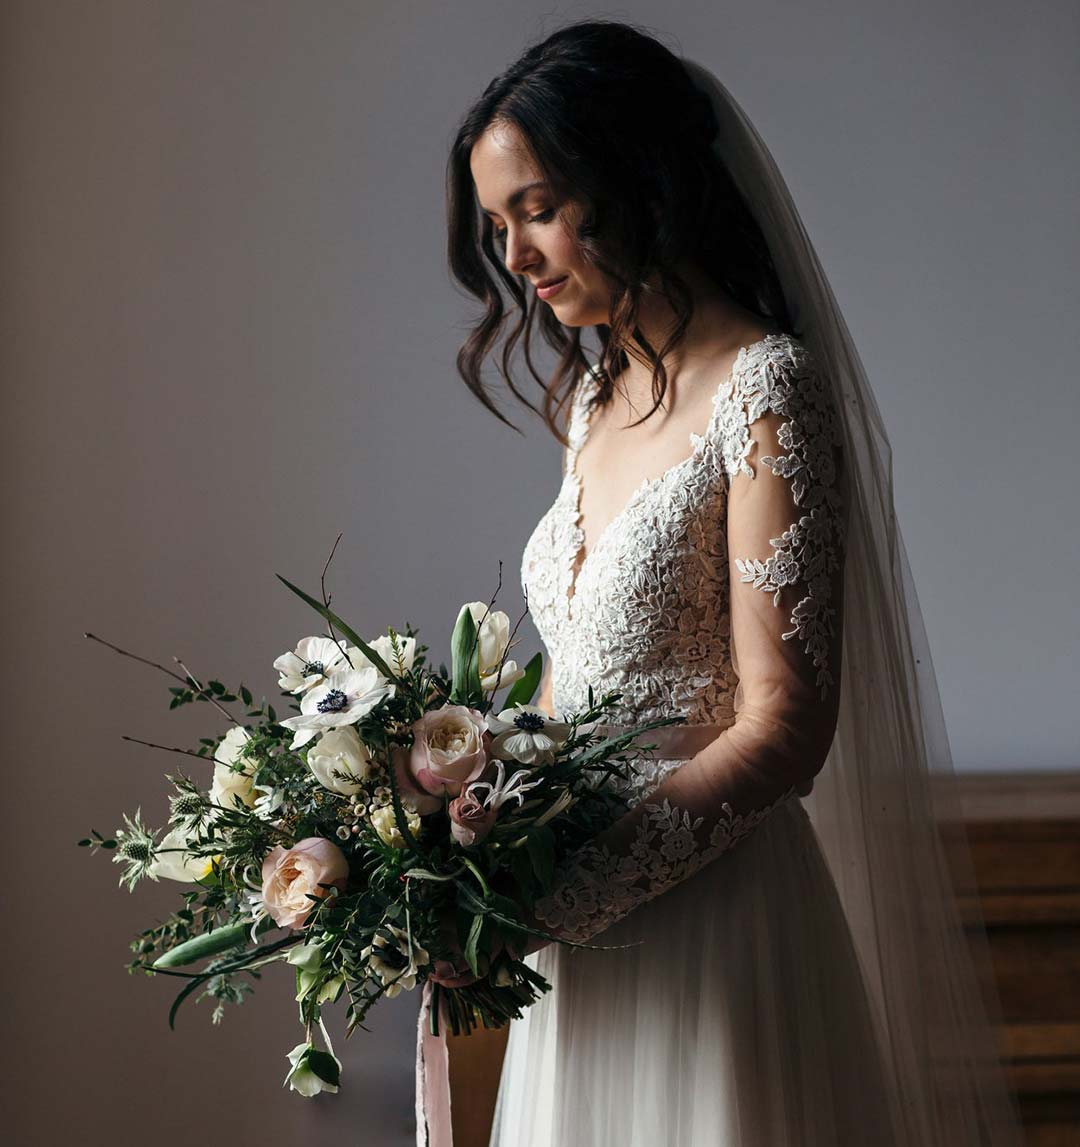 Bride with winter bouquet of flowers